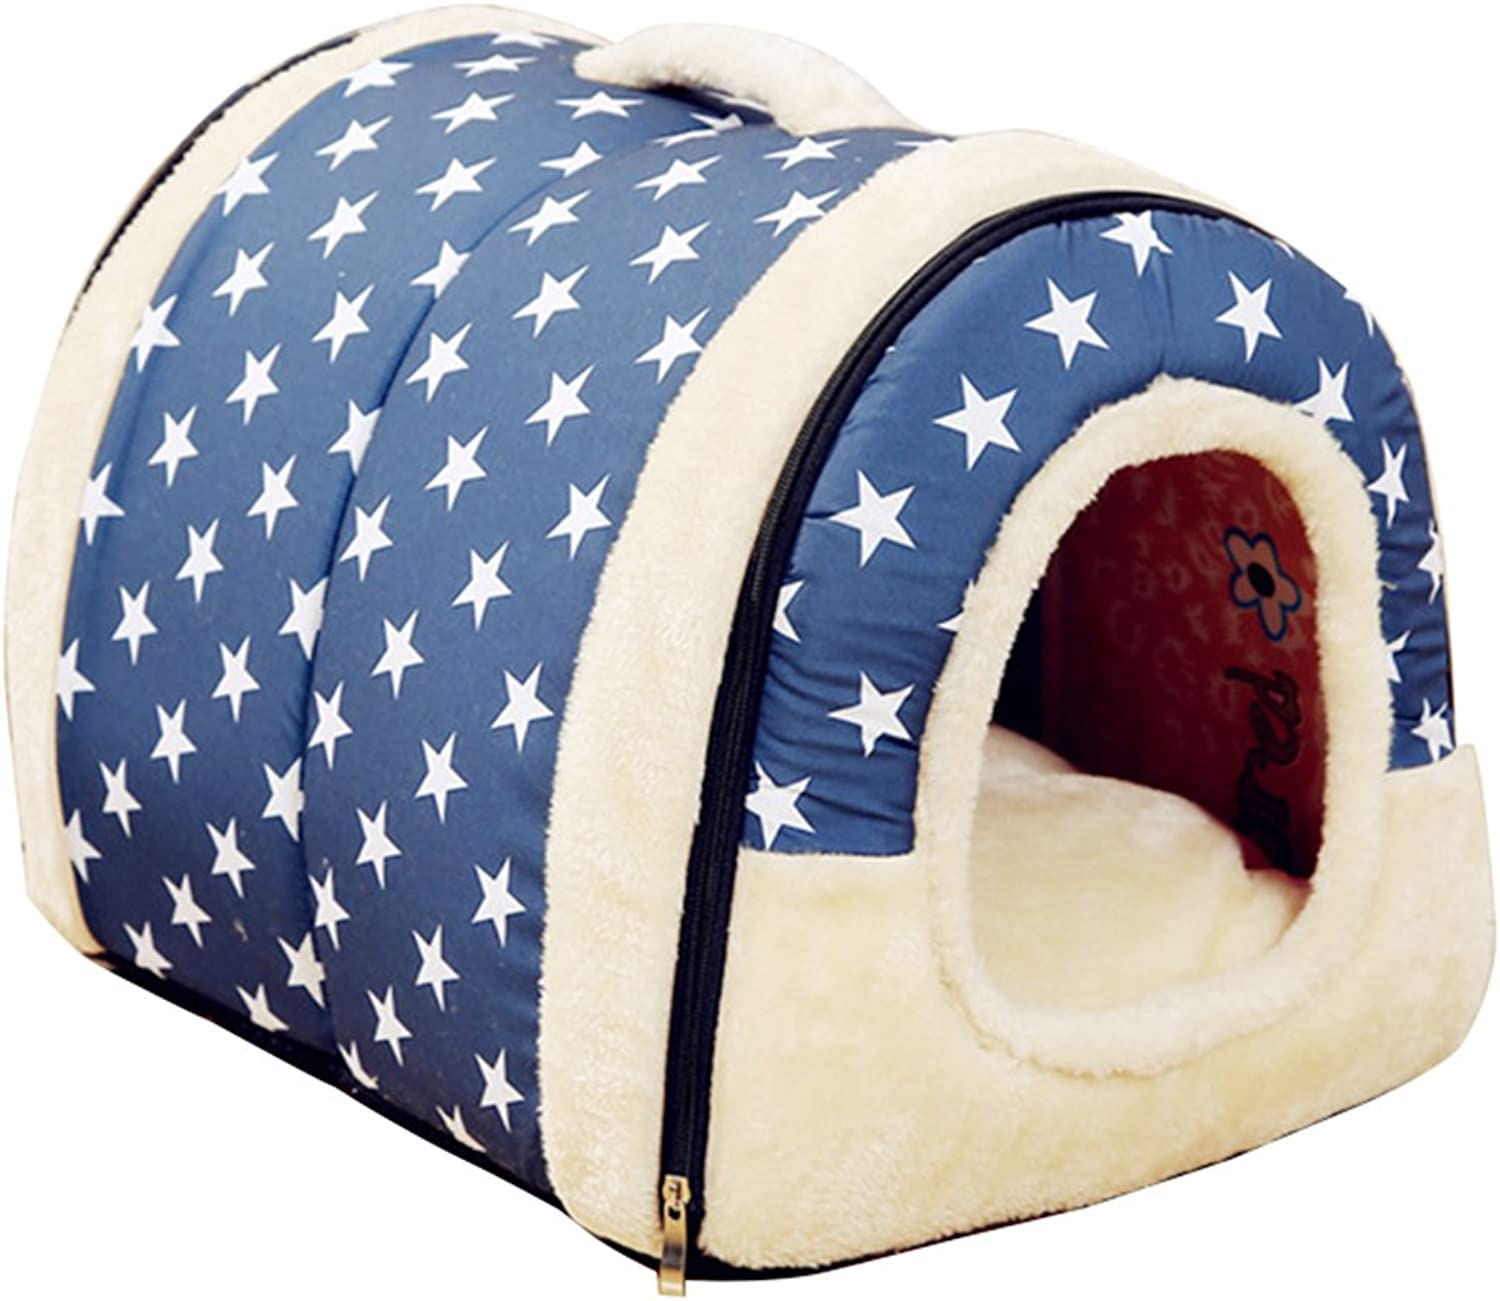 Fund Best Pet Supplies Home Sweet Home Bed Indoor Outdoor House Bed Shelter for Dogs Cat Puppy 60x45x40cm bluee Dot